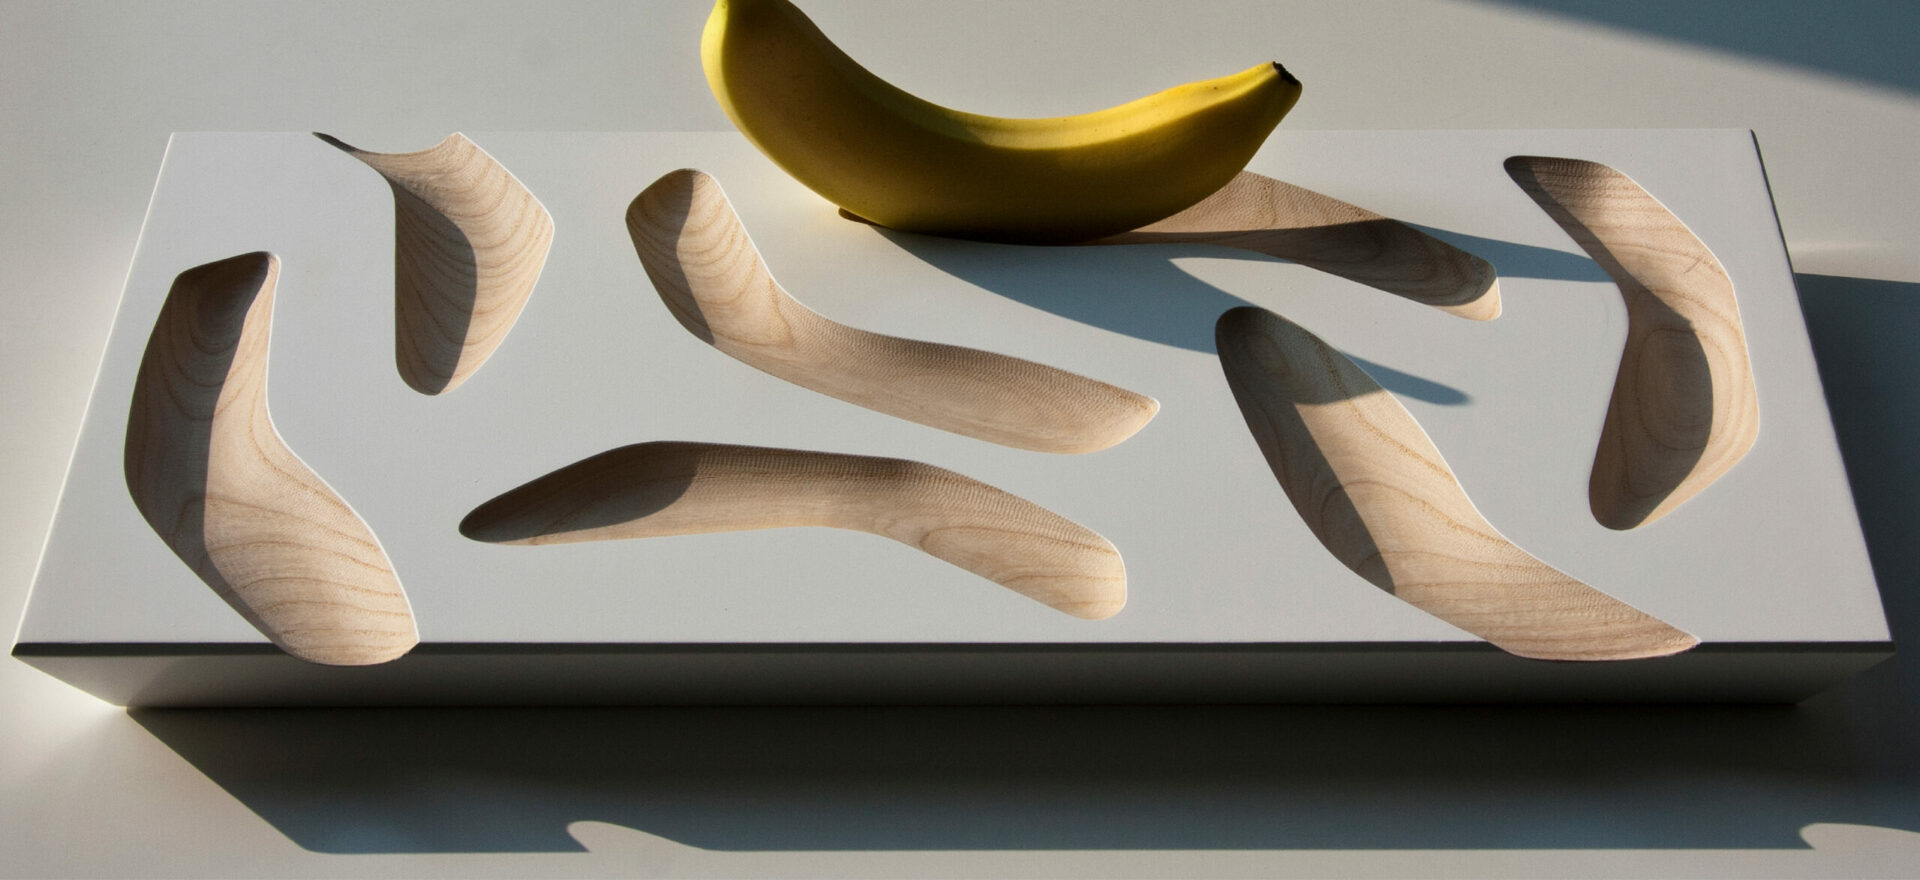 Oggetti Smarritti center piece by Mario Trimarchi in an architectural style showing details related the concave forms to hold fruits.